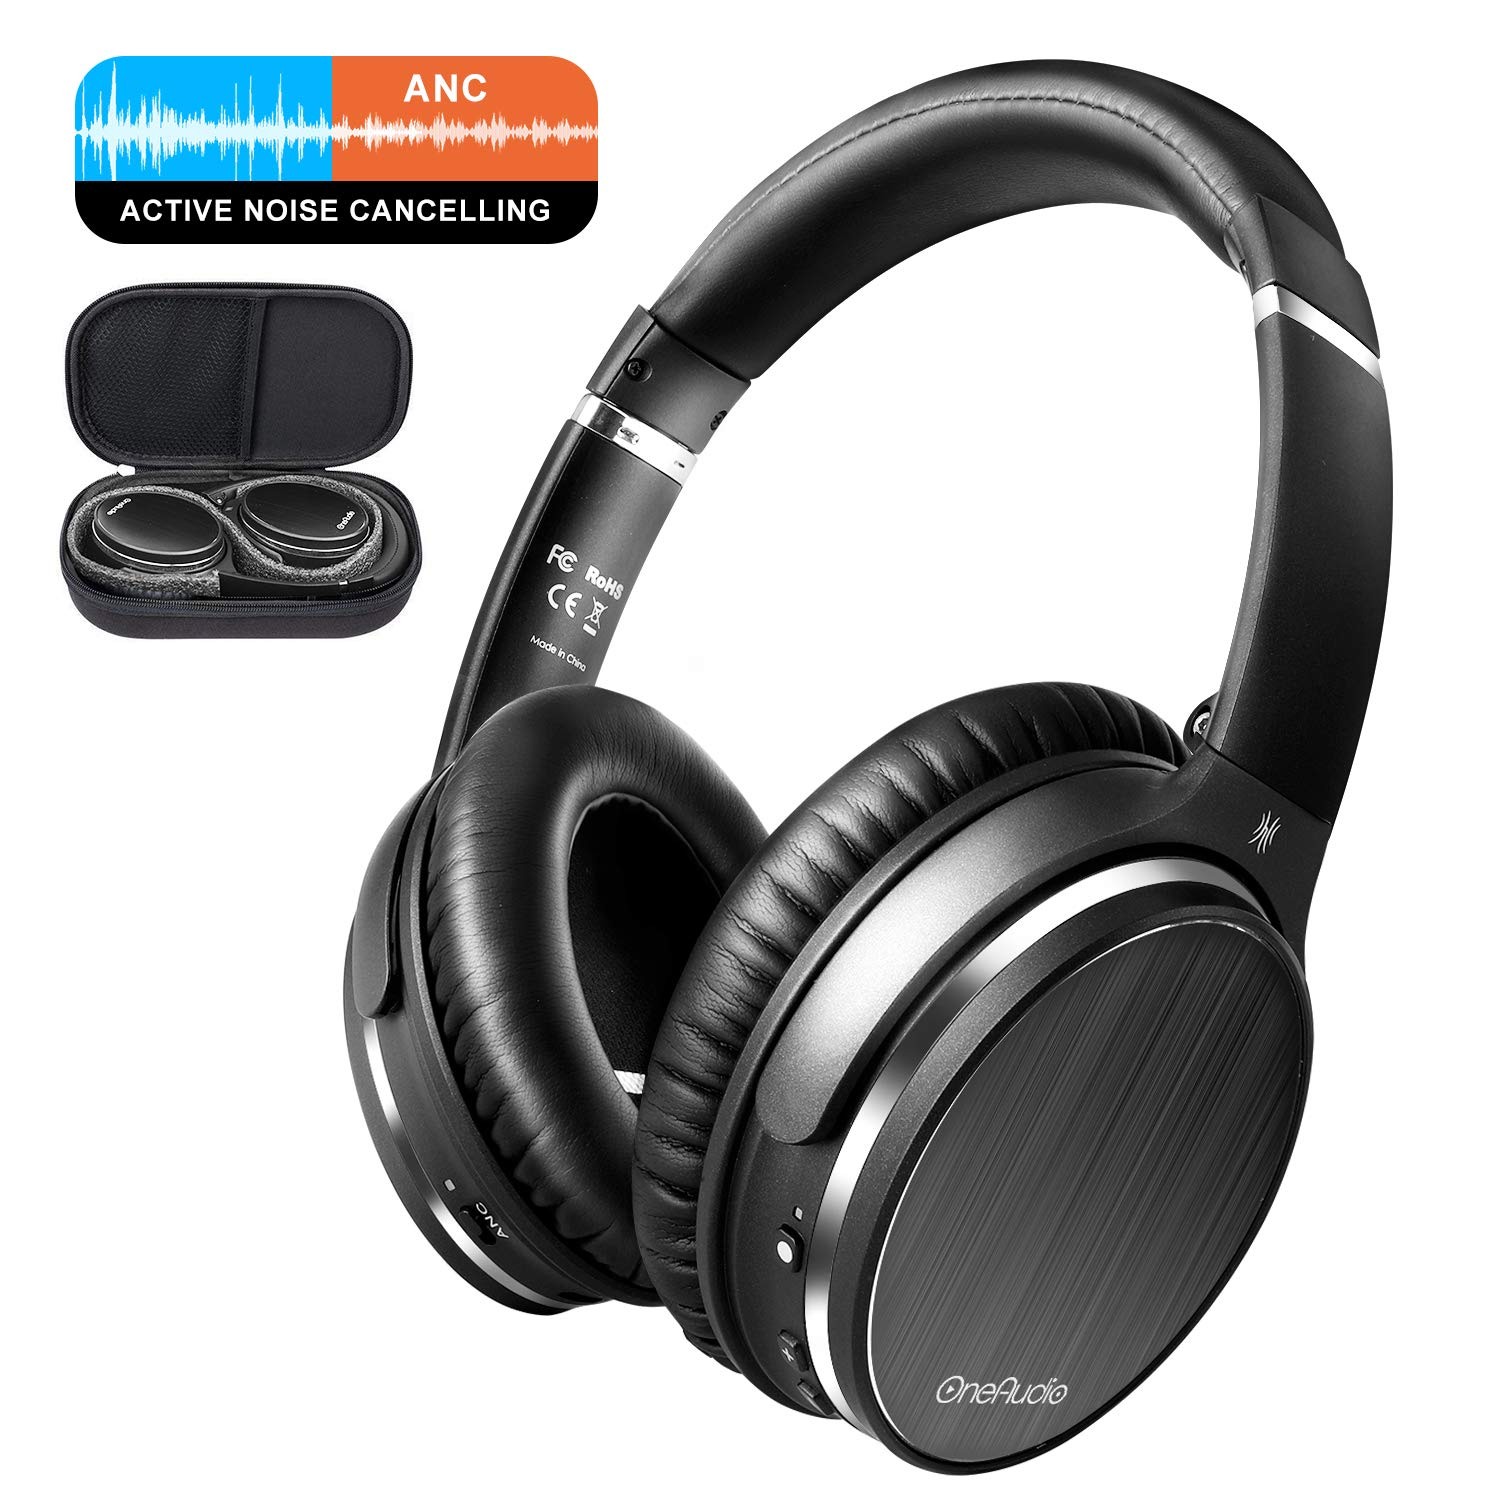 Bluetooth Bass Headphones, OneOdio 30 Hrs Play Time Stereo Wireless Headset Detachable Mic, Office Foldable Headsets 50mm Neodymium Drivers PC, TV, Cell Phones OneOdio USA